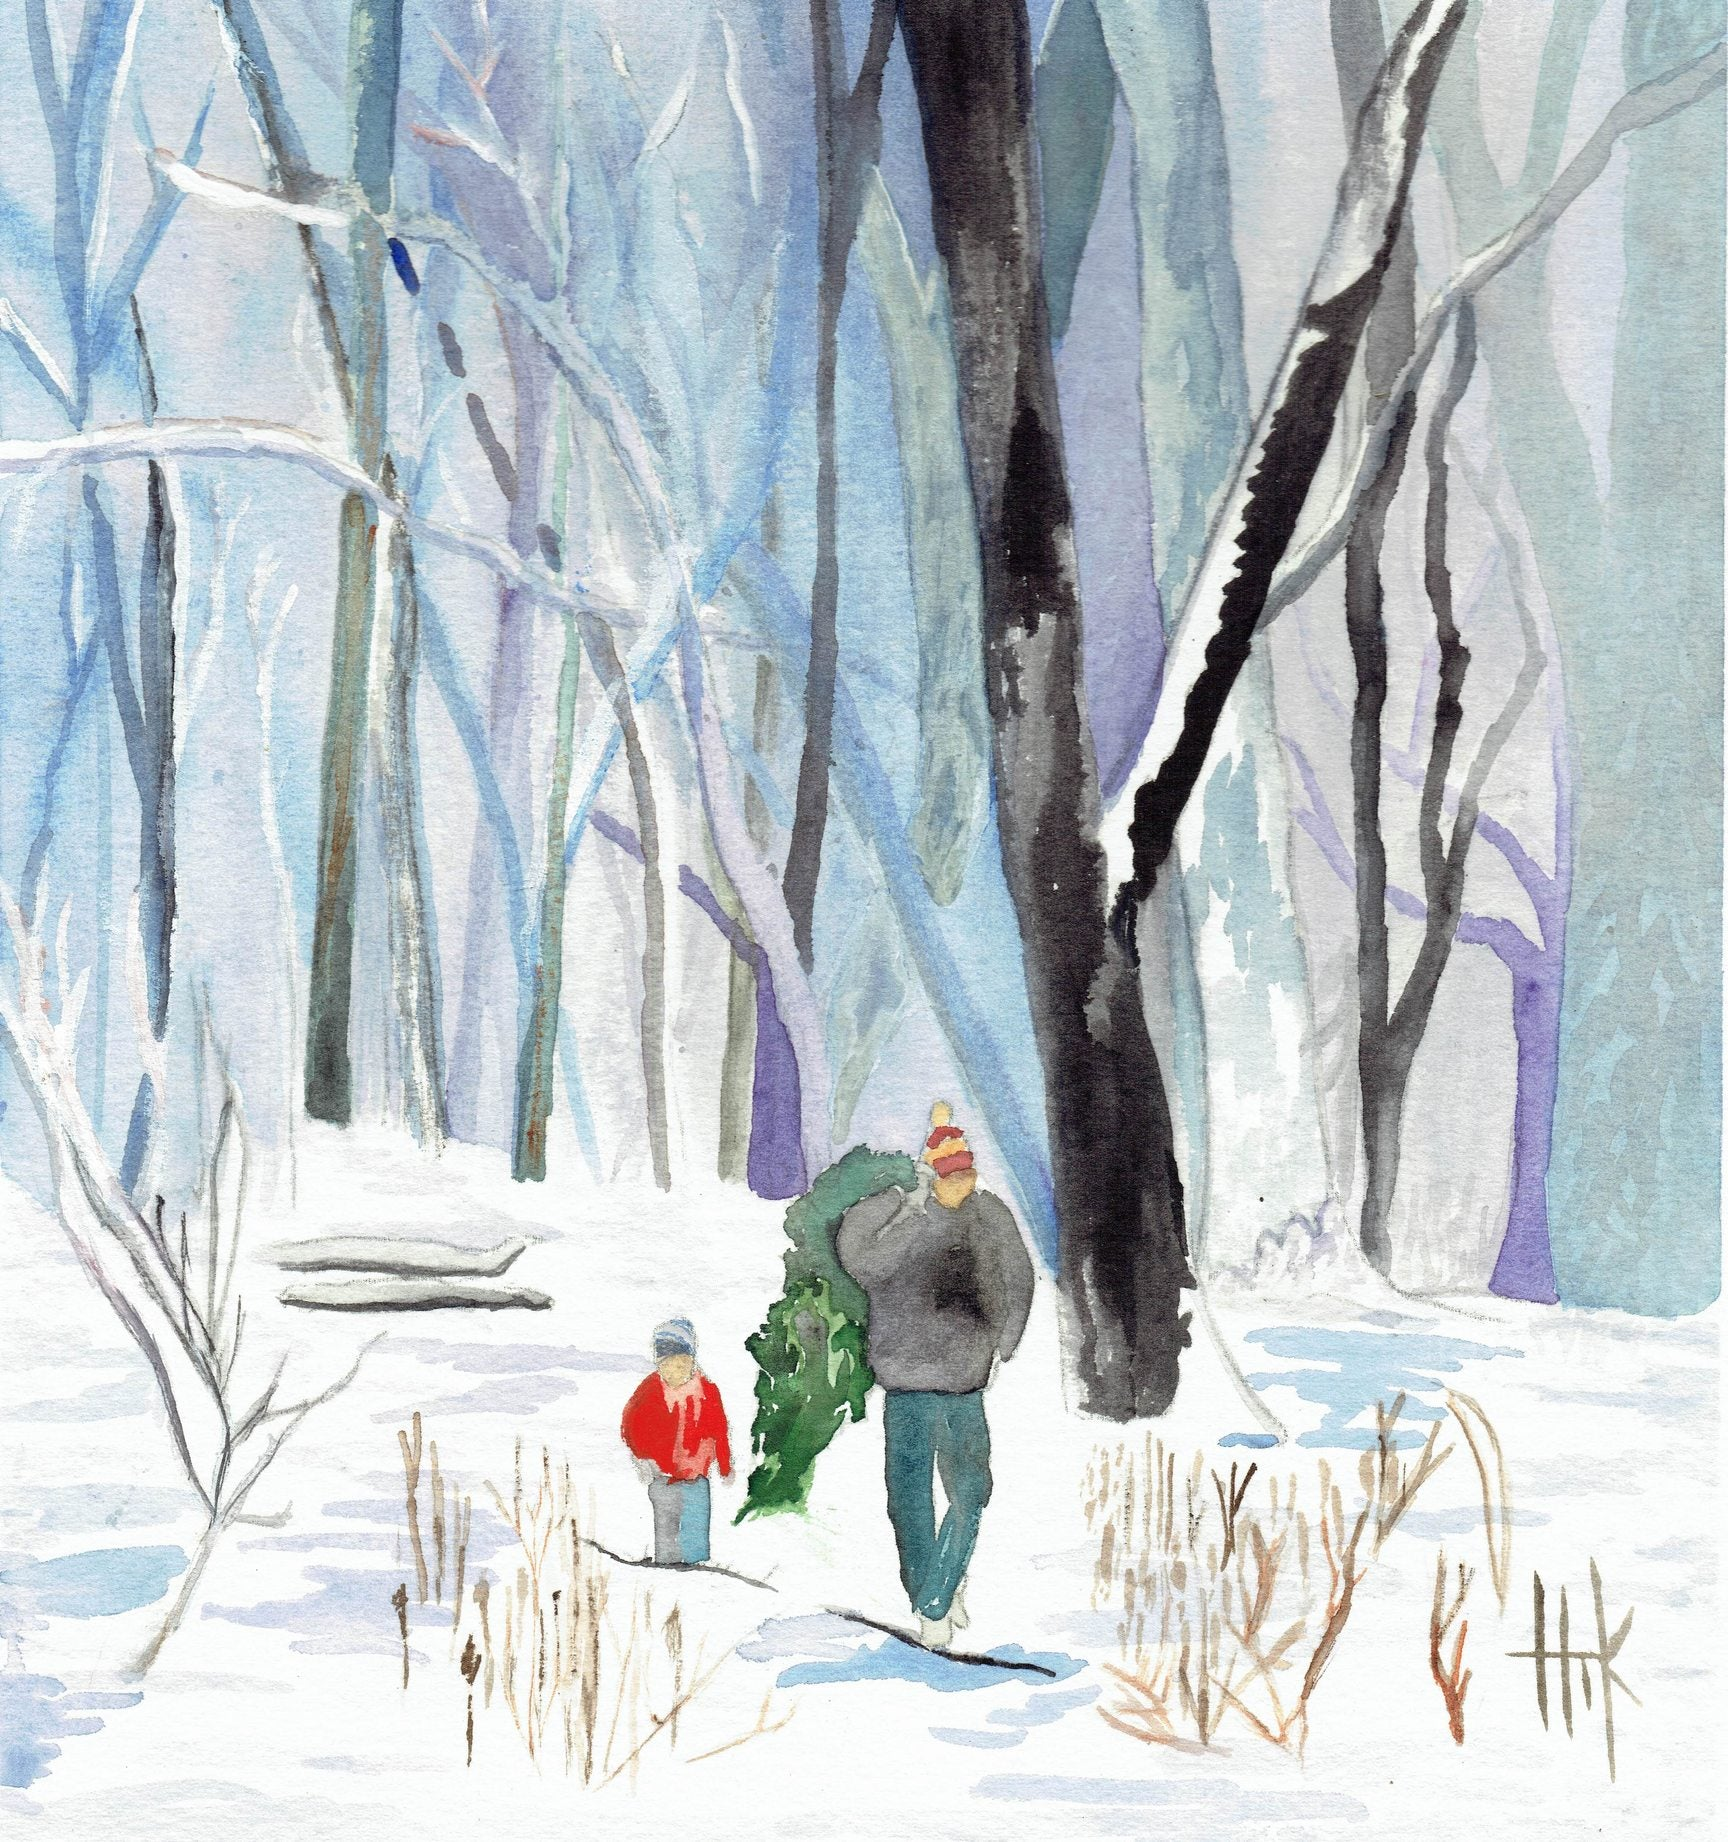 FATHER AND SON IN WOODS - CARDS